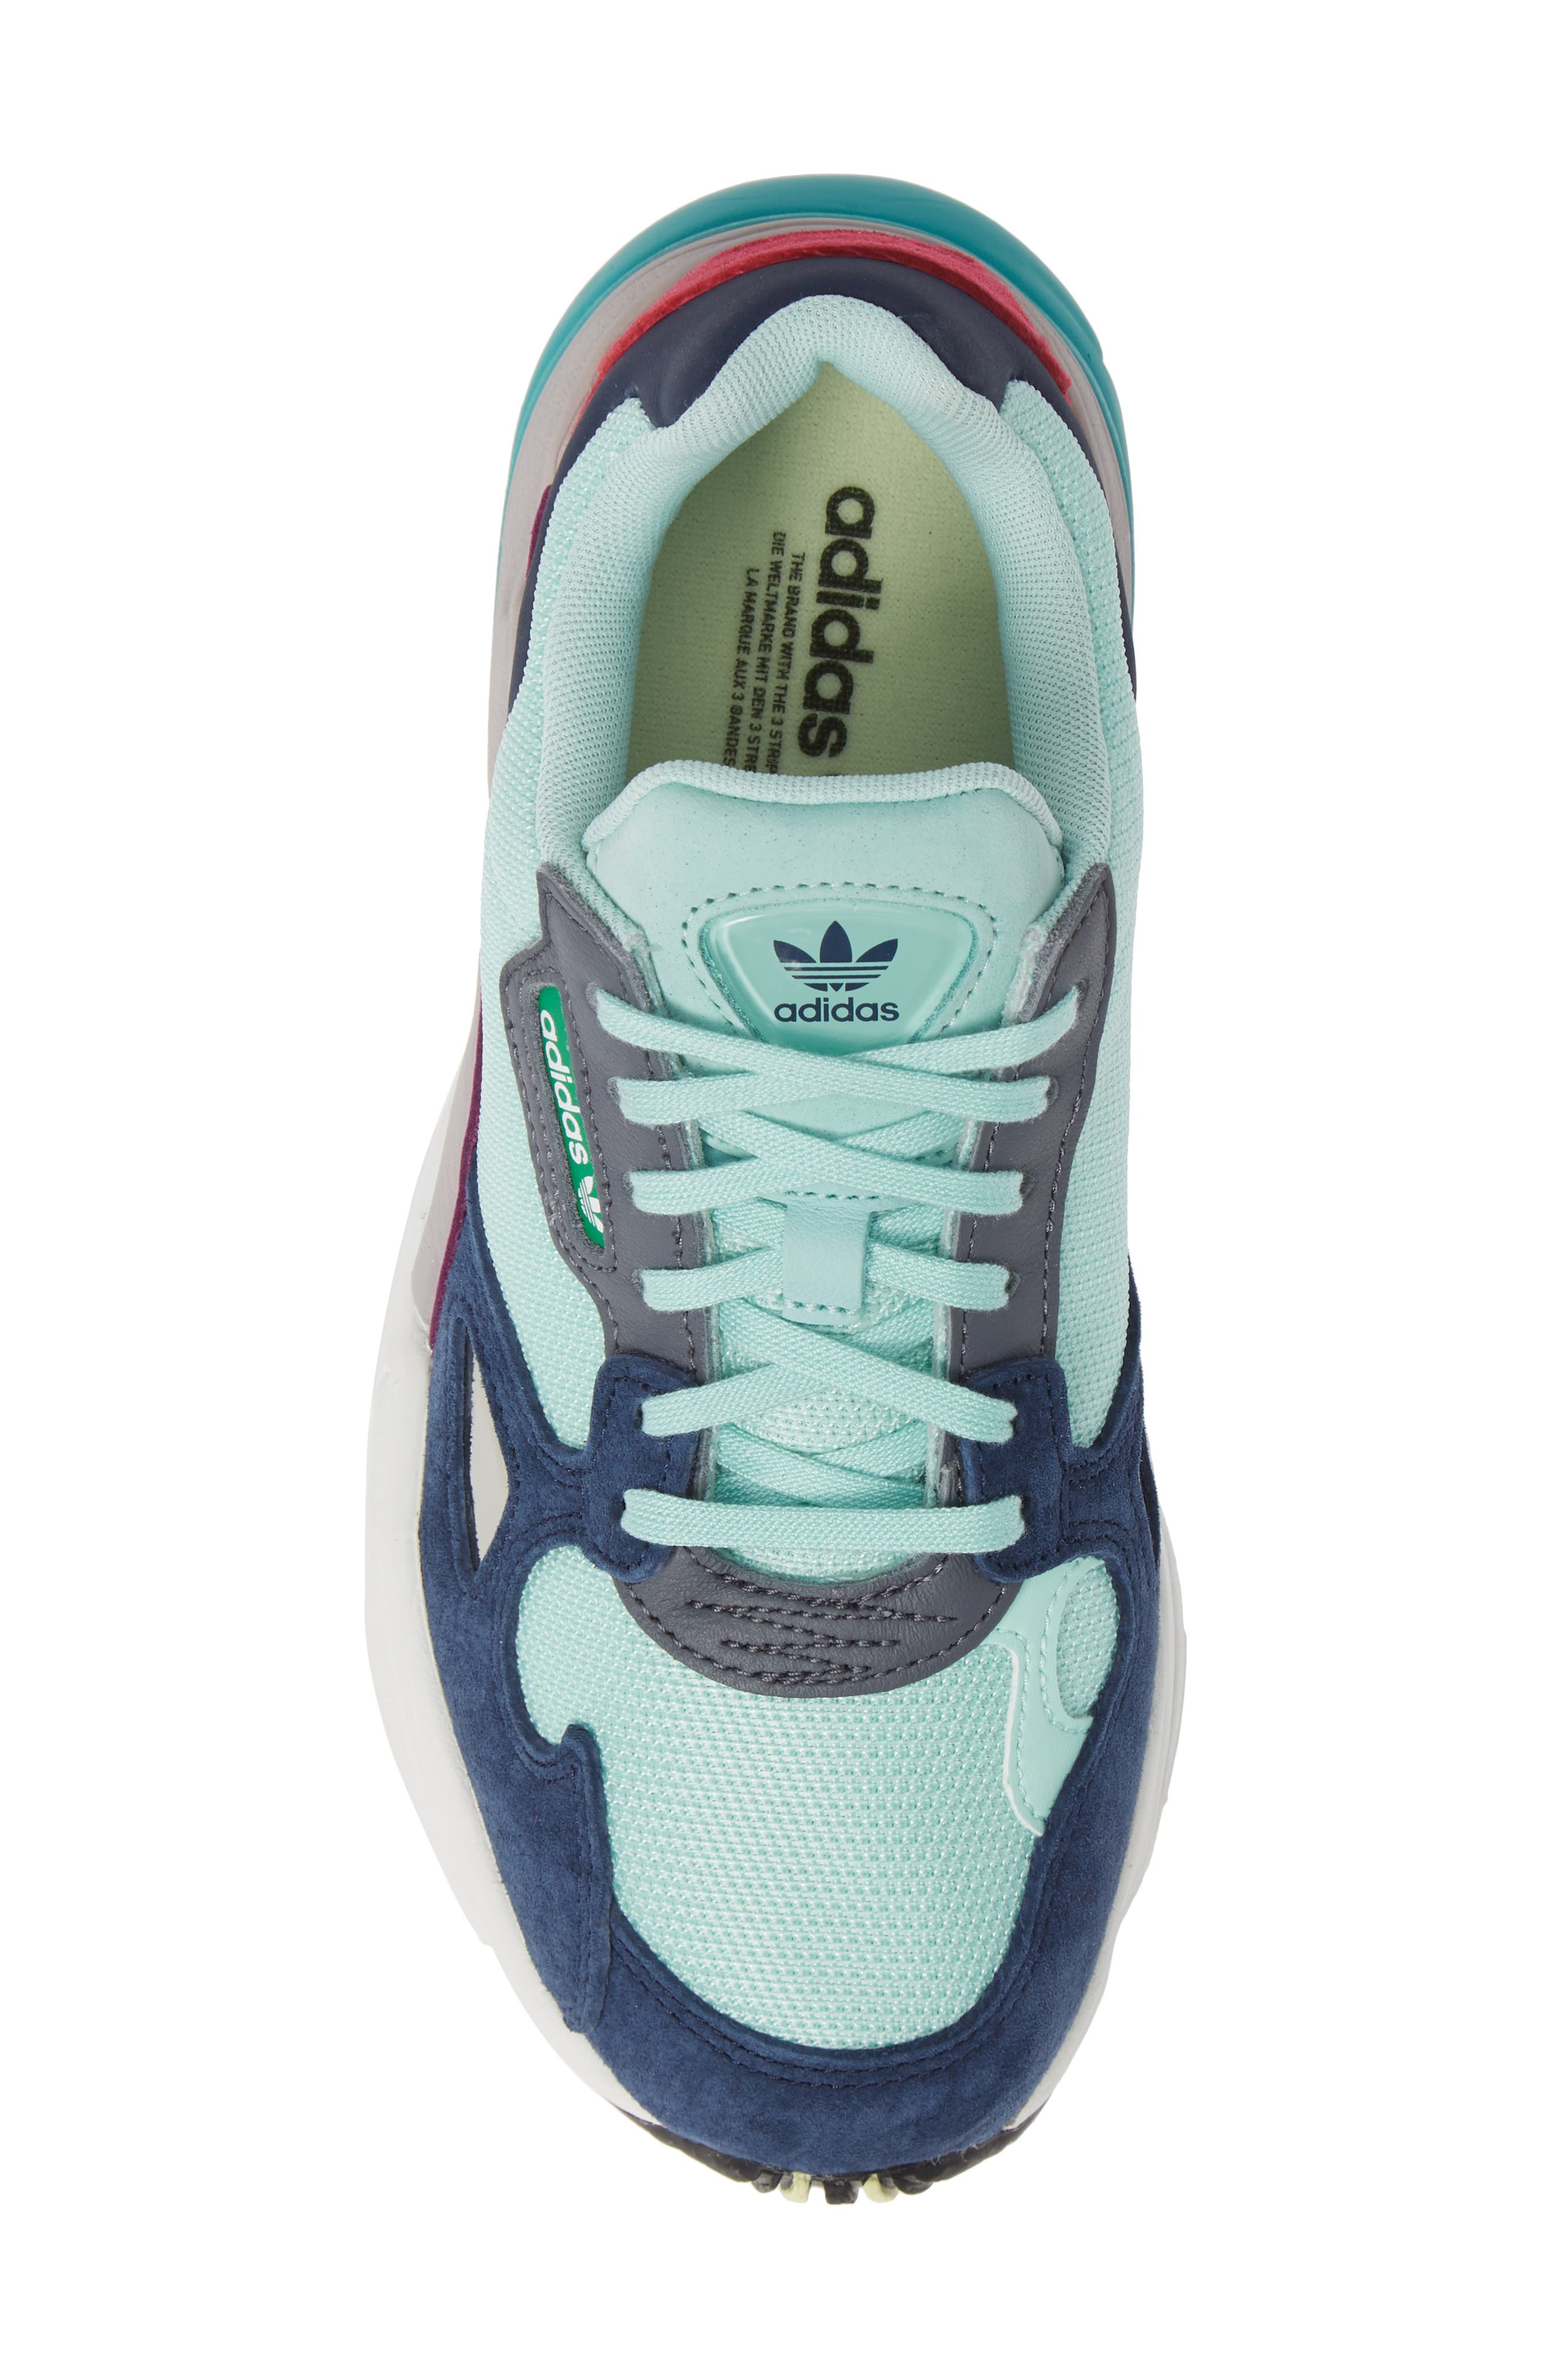 Falcon Sneaker,                             Alternate thumbnail 5, color,                             CLEAR MINT/ CLEAR MINT/ NAVY